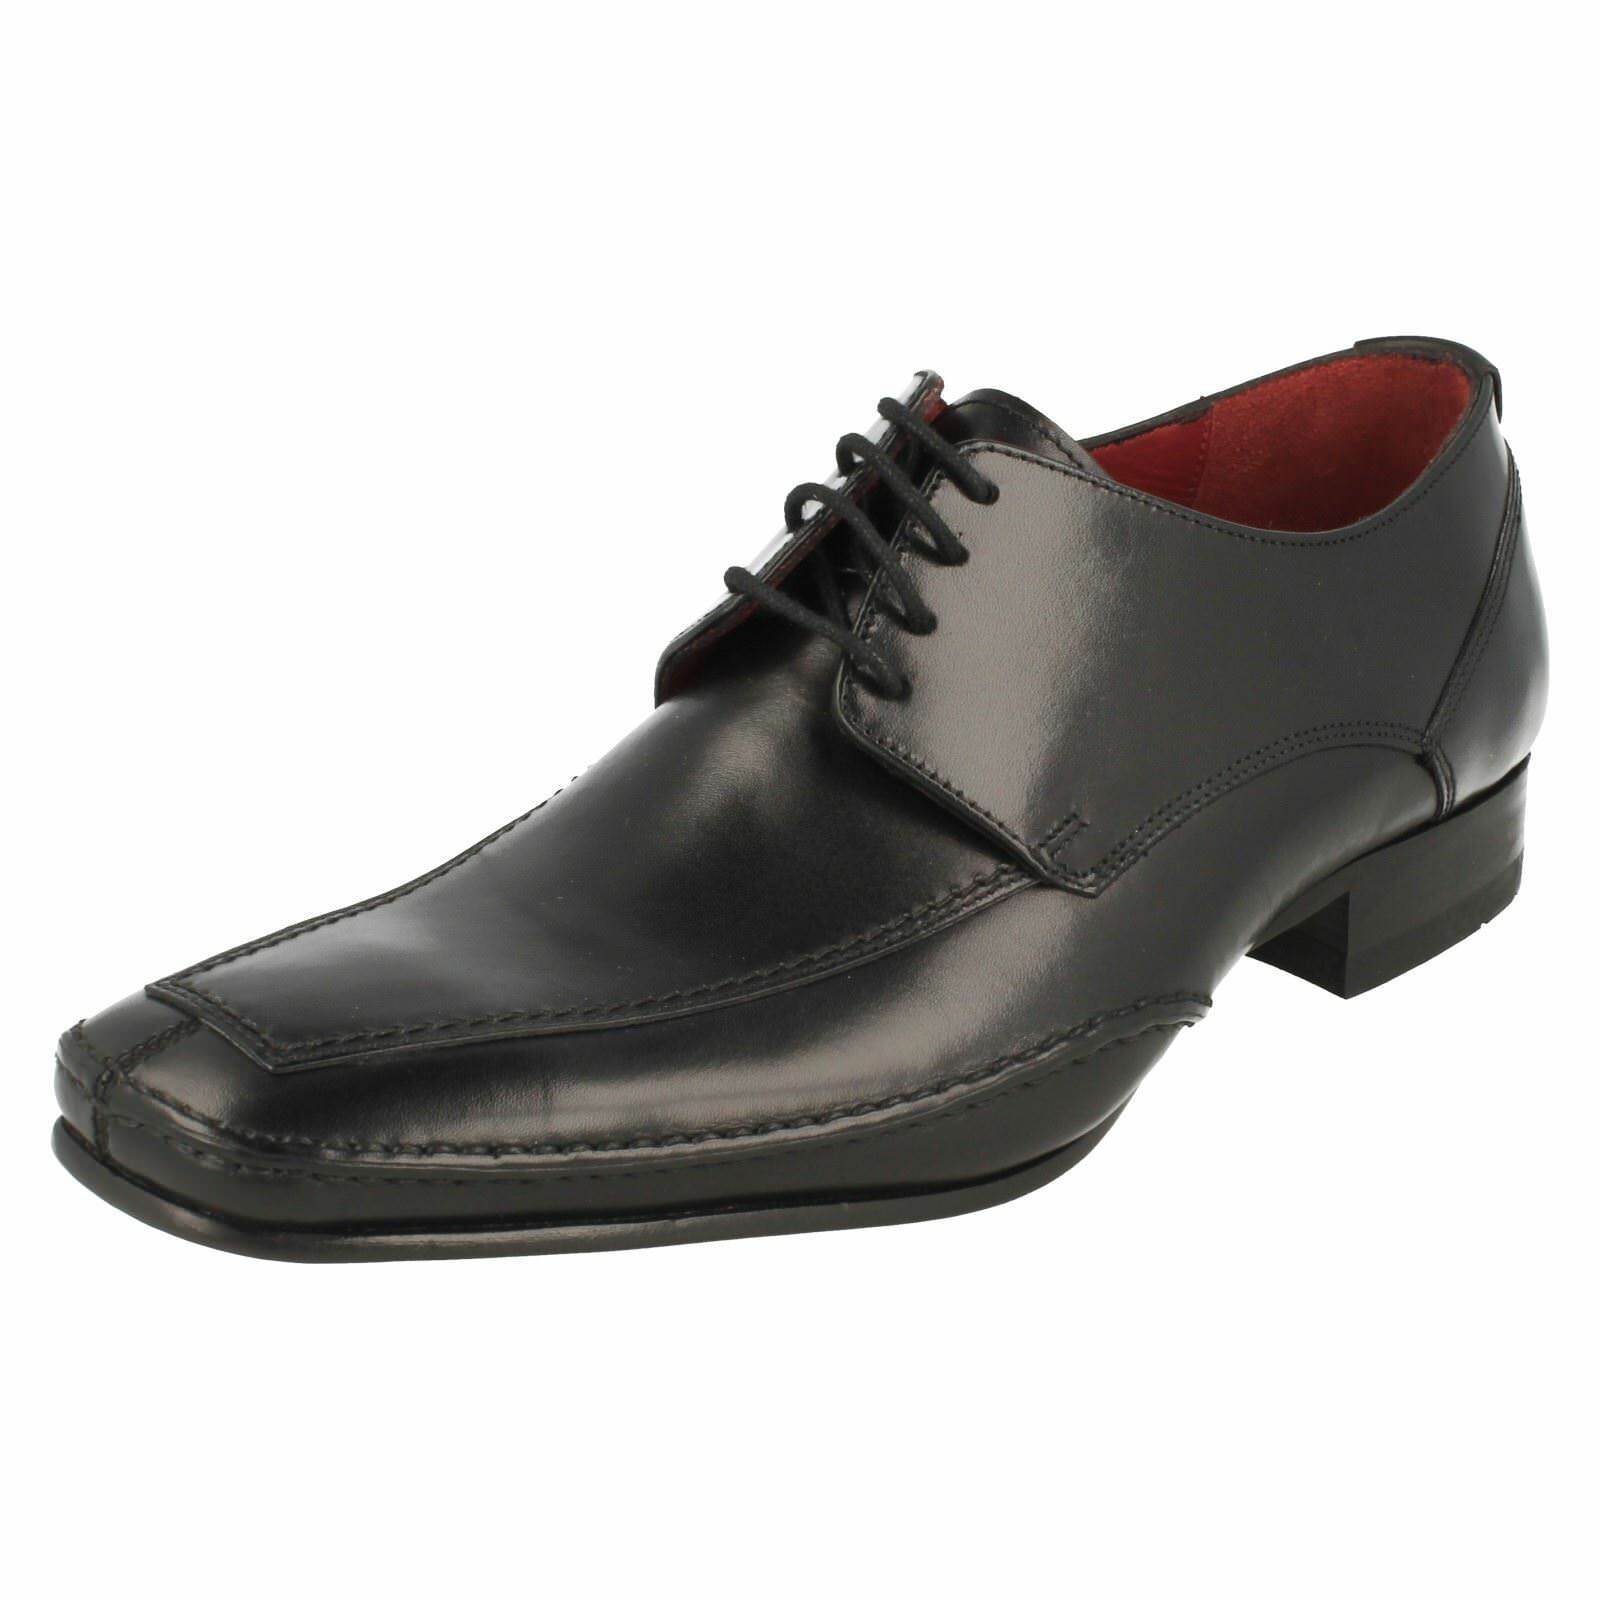 Mens Hurst F F F fitting black leather lace up shoe by Loake 2dbed7